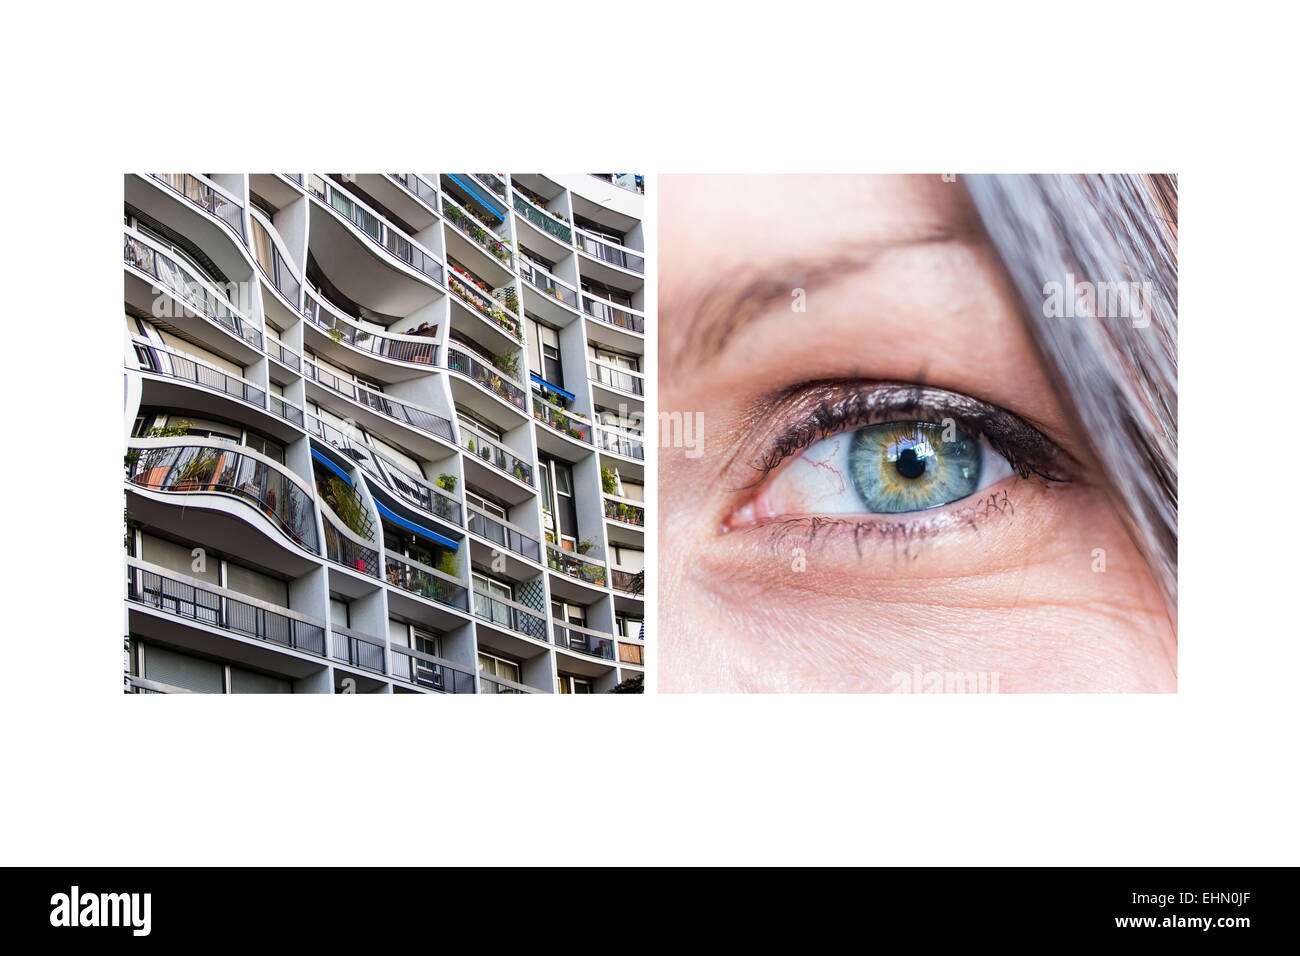 First stage of the vision of a person affected by Age-Related Macular Degeneration (ARMD). - Stock Image